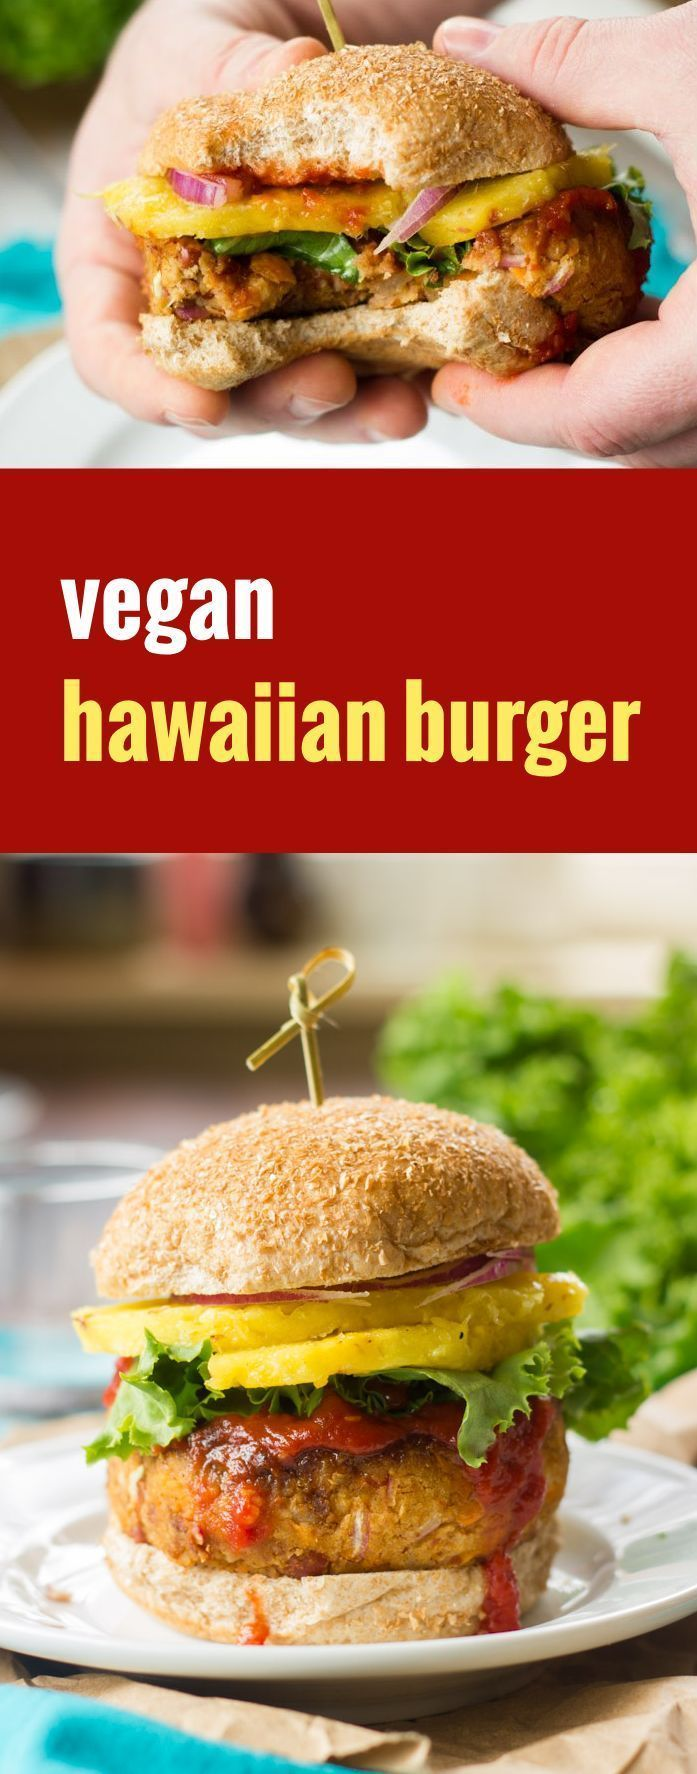 Sweet potato and red bean patties are pan-fried and topped with tangy barbecue sauce and juicy pineapple slabs to create these flavorful and satisfying vegan Hawaiian burgers.